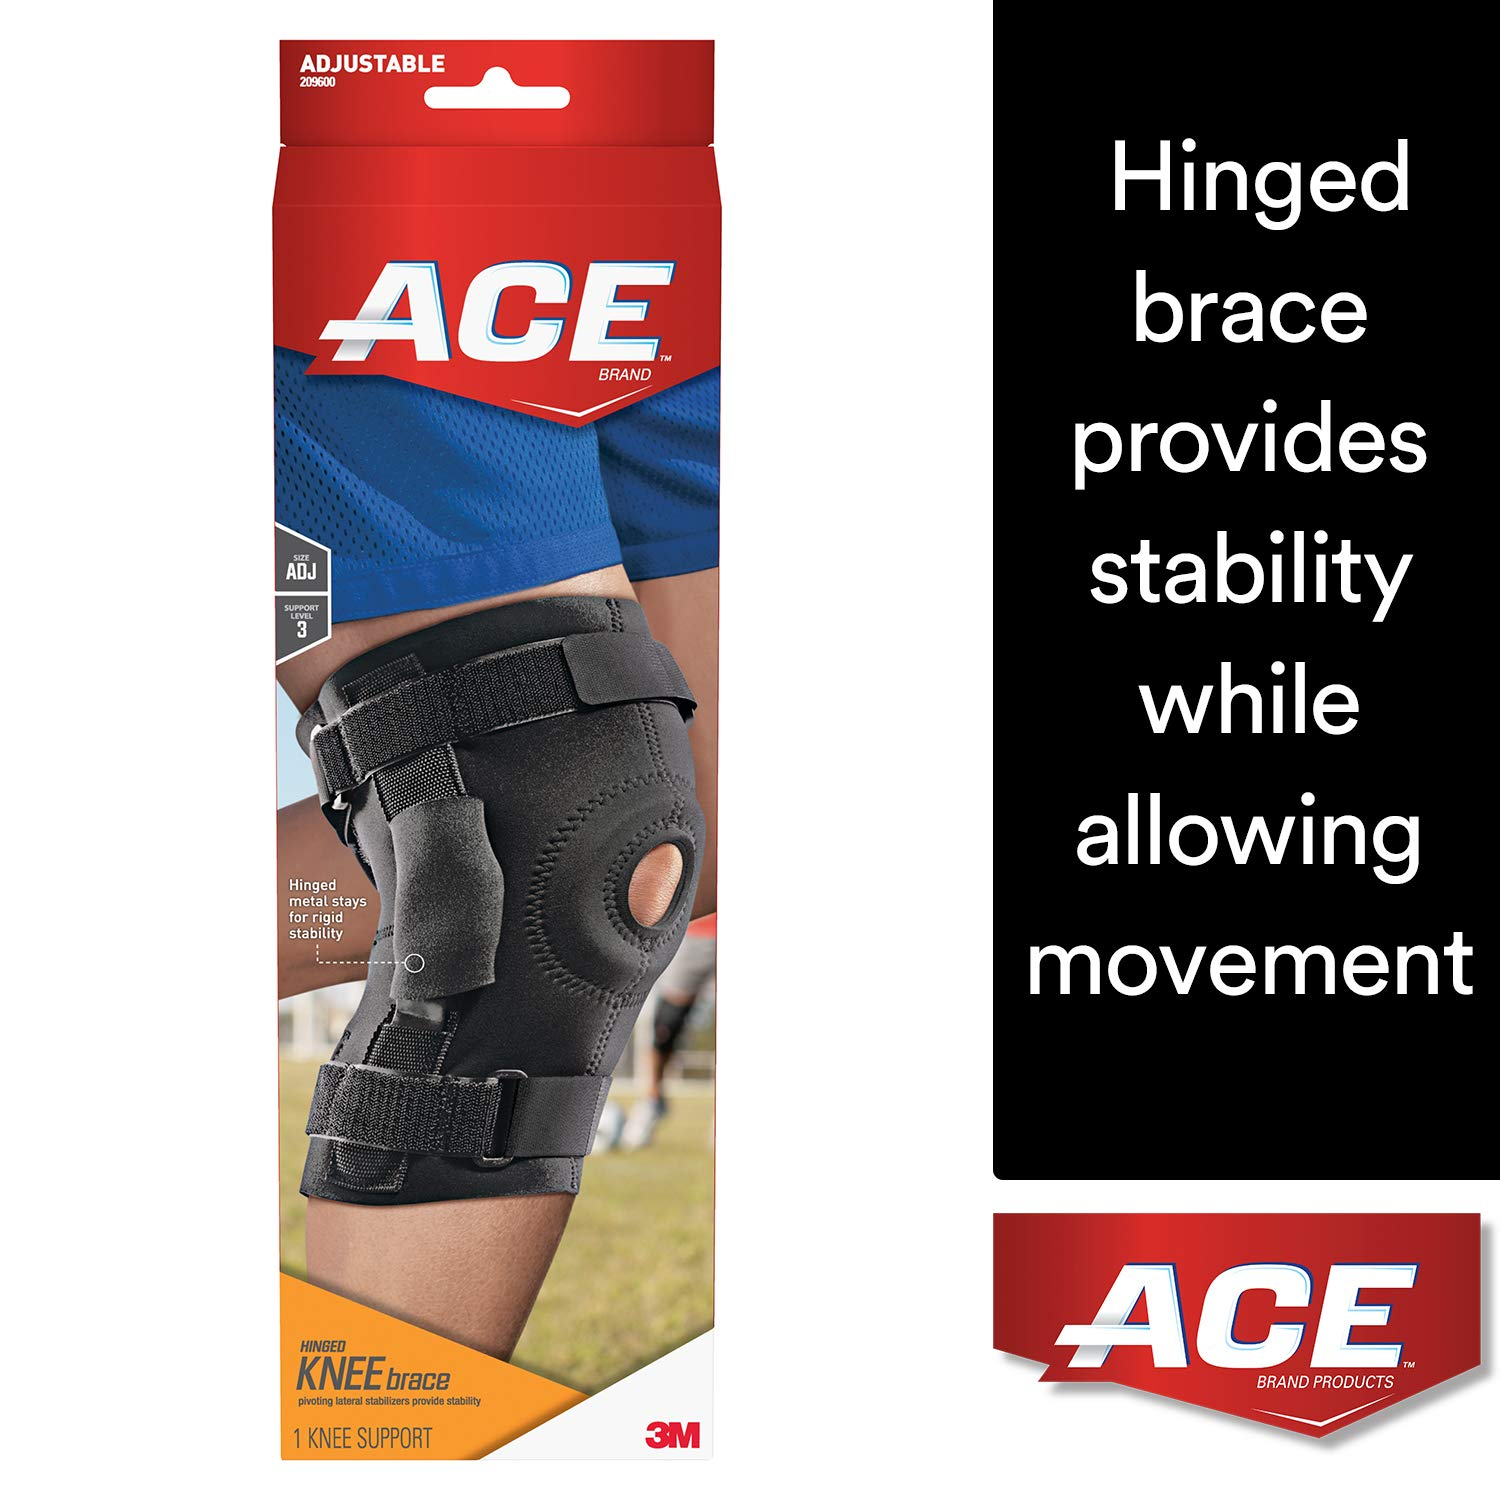 af637f9fc5 Amazon.com: ACE Hinged Knee Brace, One Size Fits Most, Left or Right Knee,  Adjustable, Firm, Stabilizing Compression to Weak, Sore Muscles and Joints:  ...